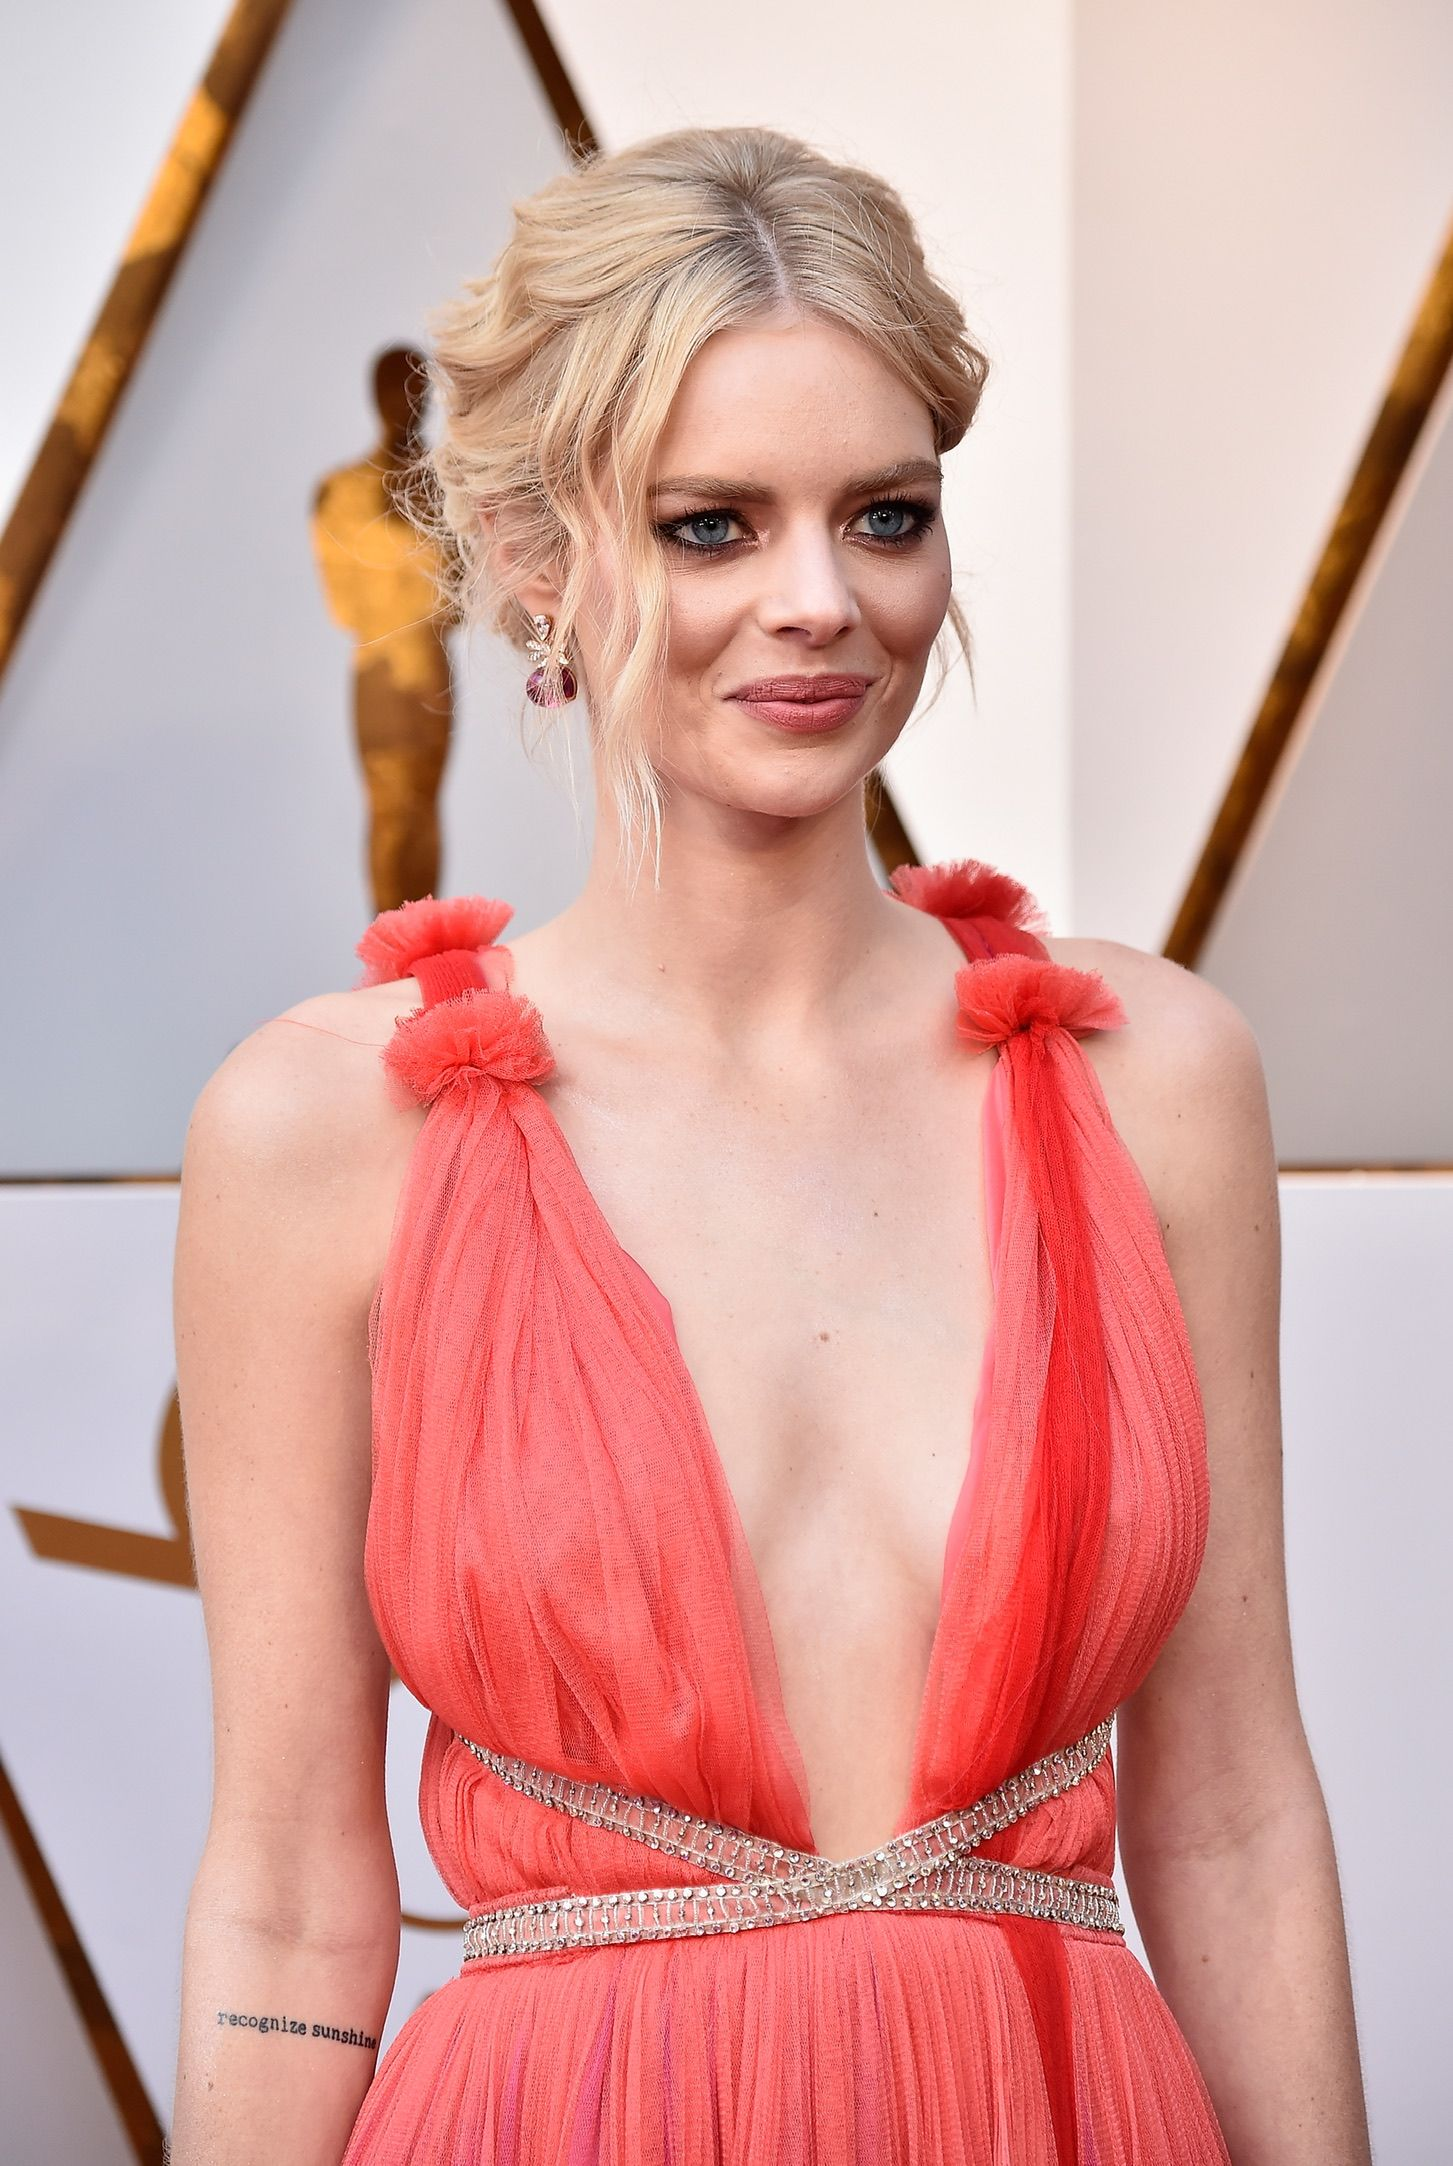 Home and Aways Samara Weaving reveals excitement at